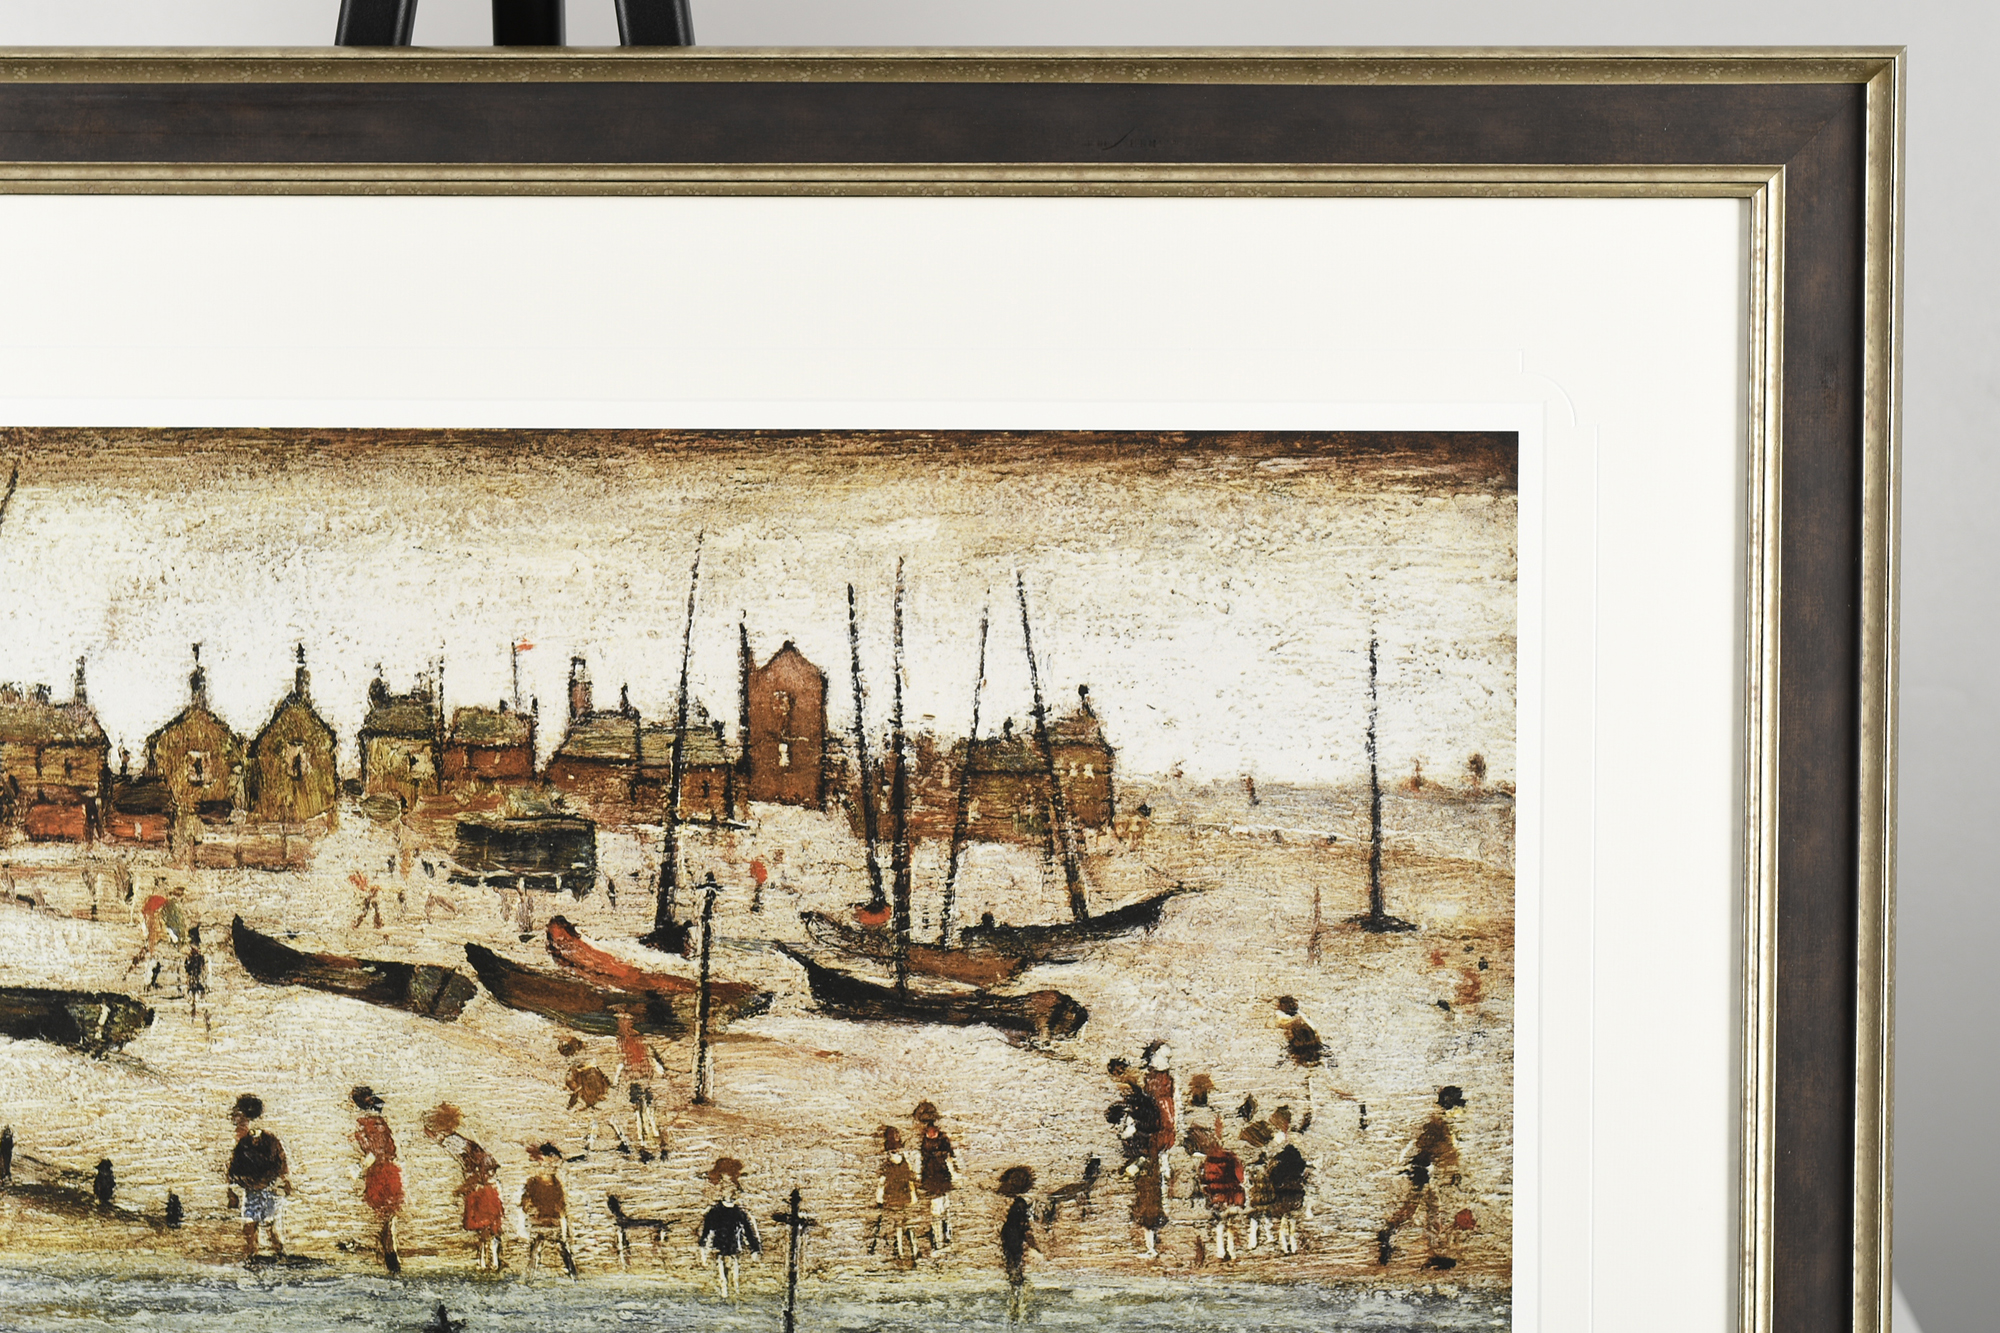 """Limited Edition L.S. Lowry """"The Beach"""" - Image 7 of 9"""